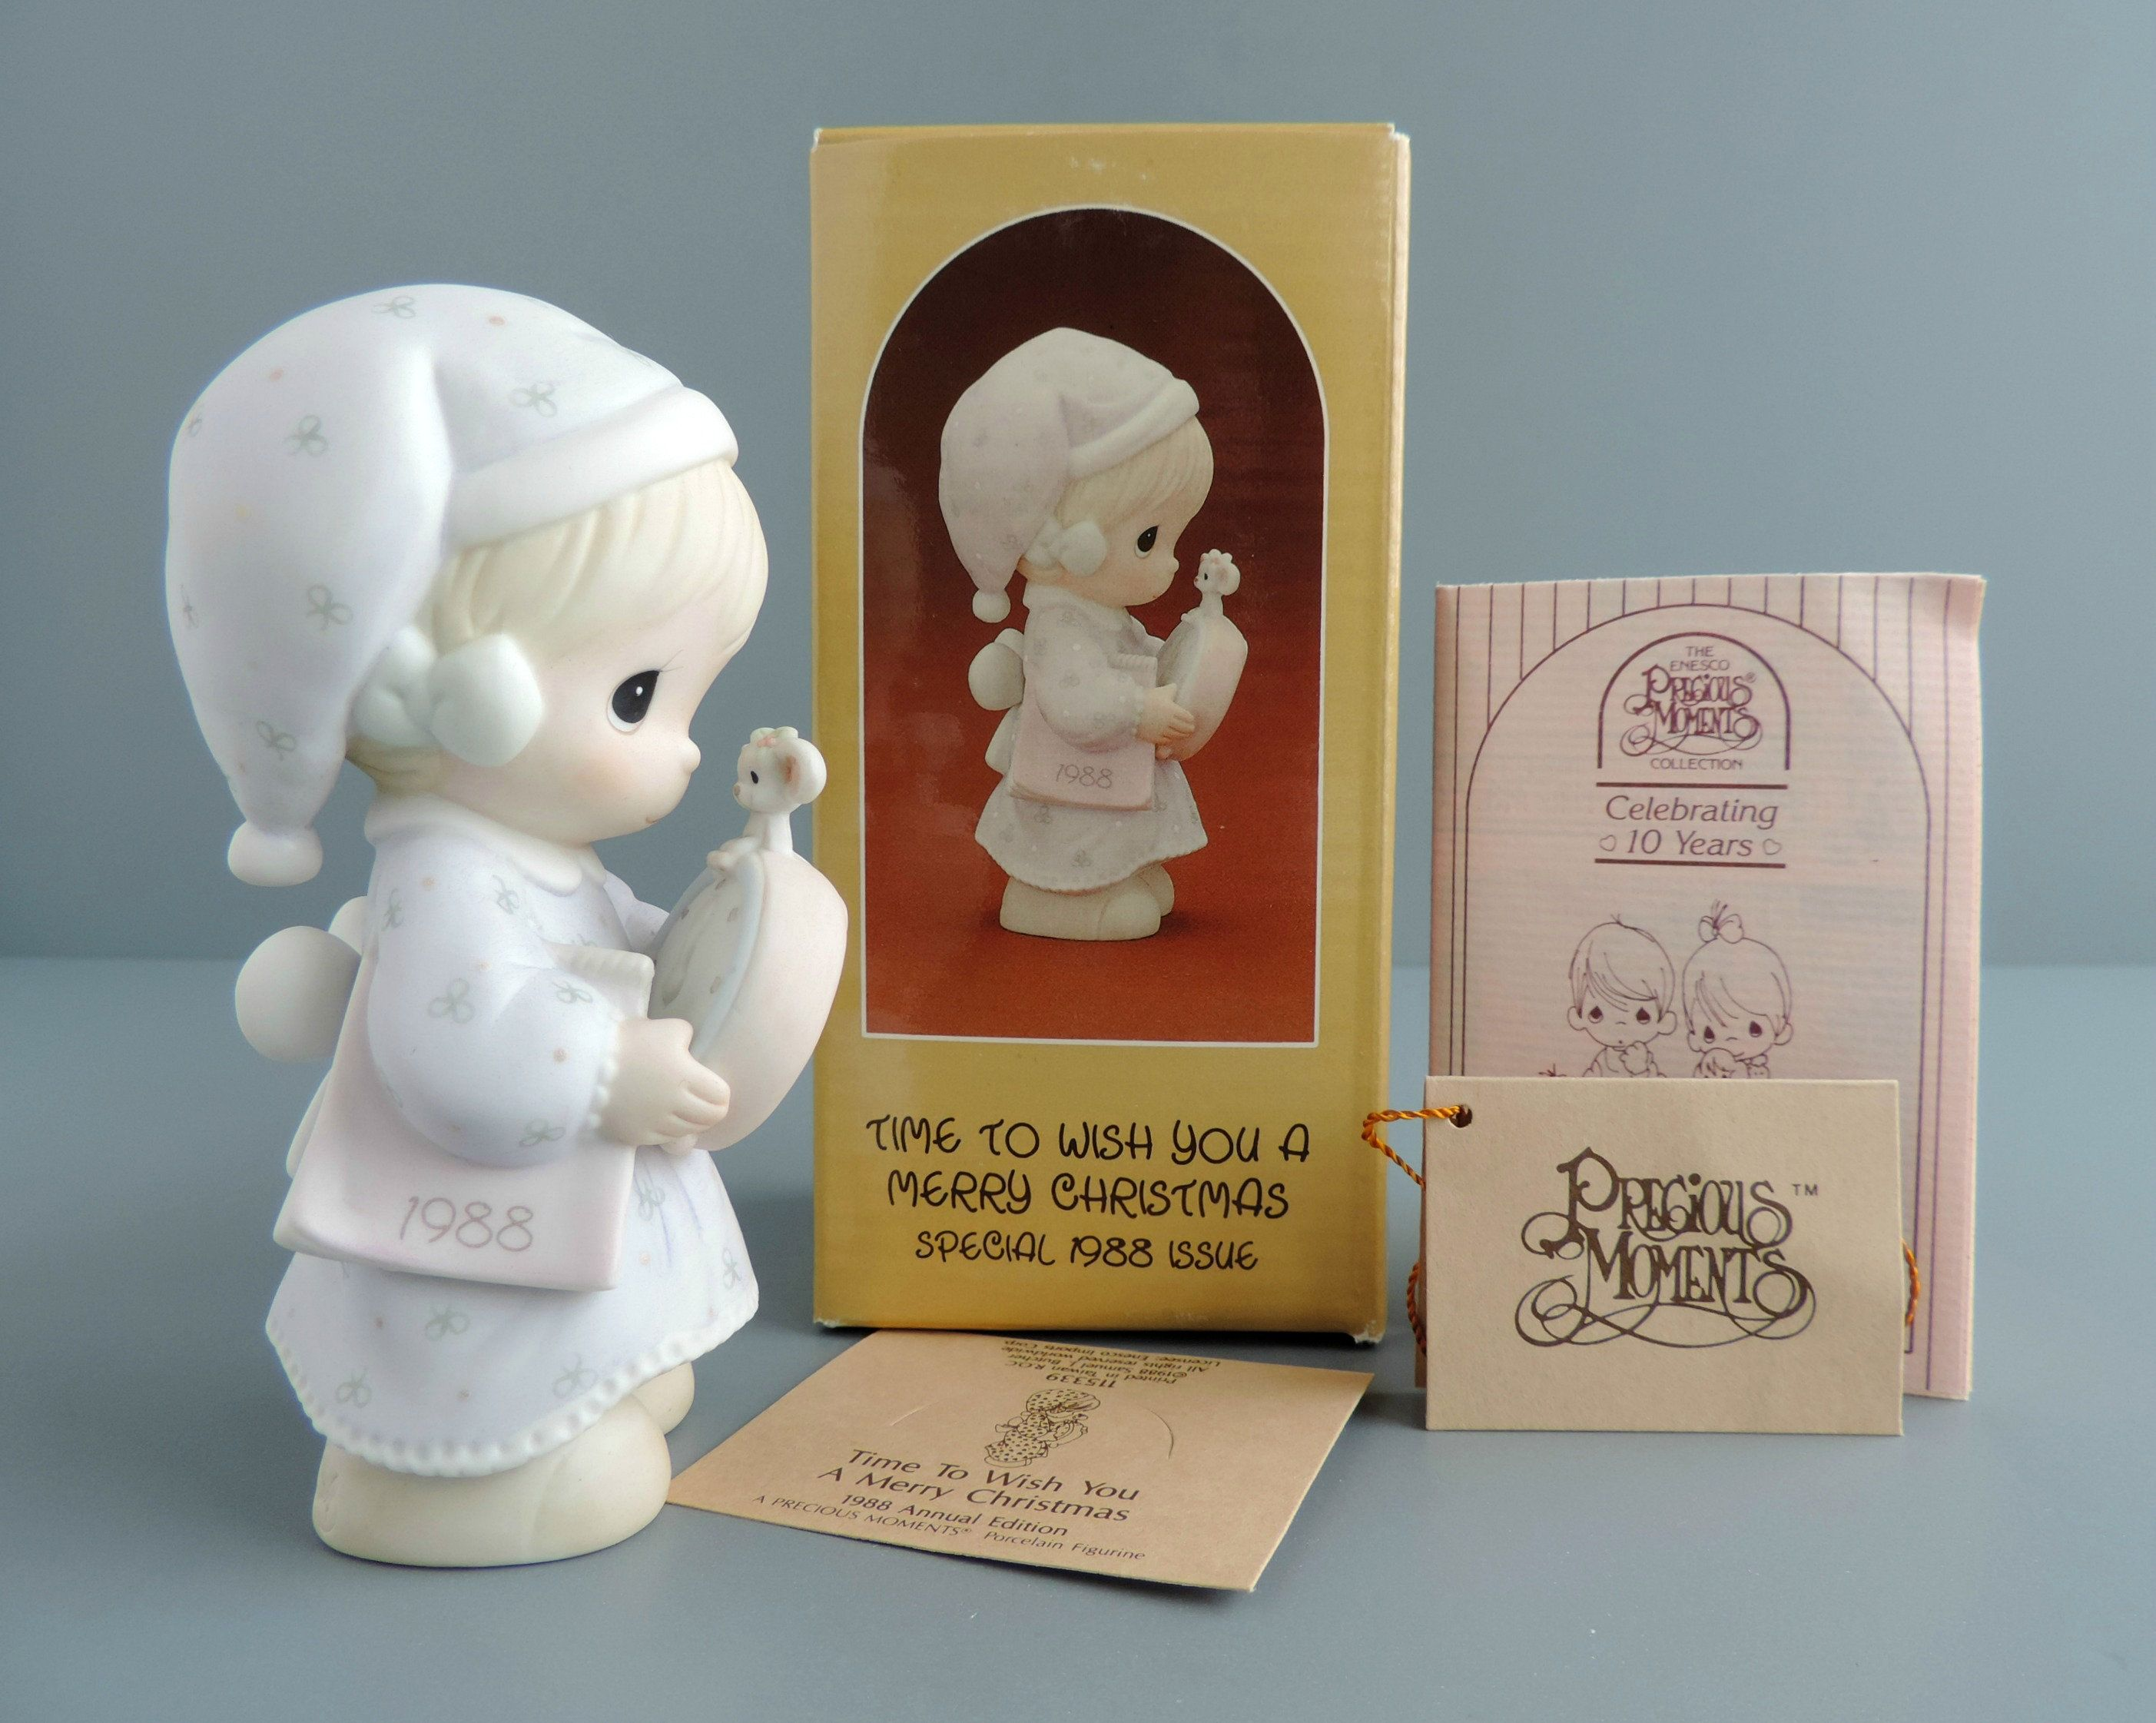 Vintage Precious Moments Time To Wish You A Merry Christmas Figurine 115339 Girl Mouse Clock Dated Precious Moments Christmas Figurines Christmas Girl